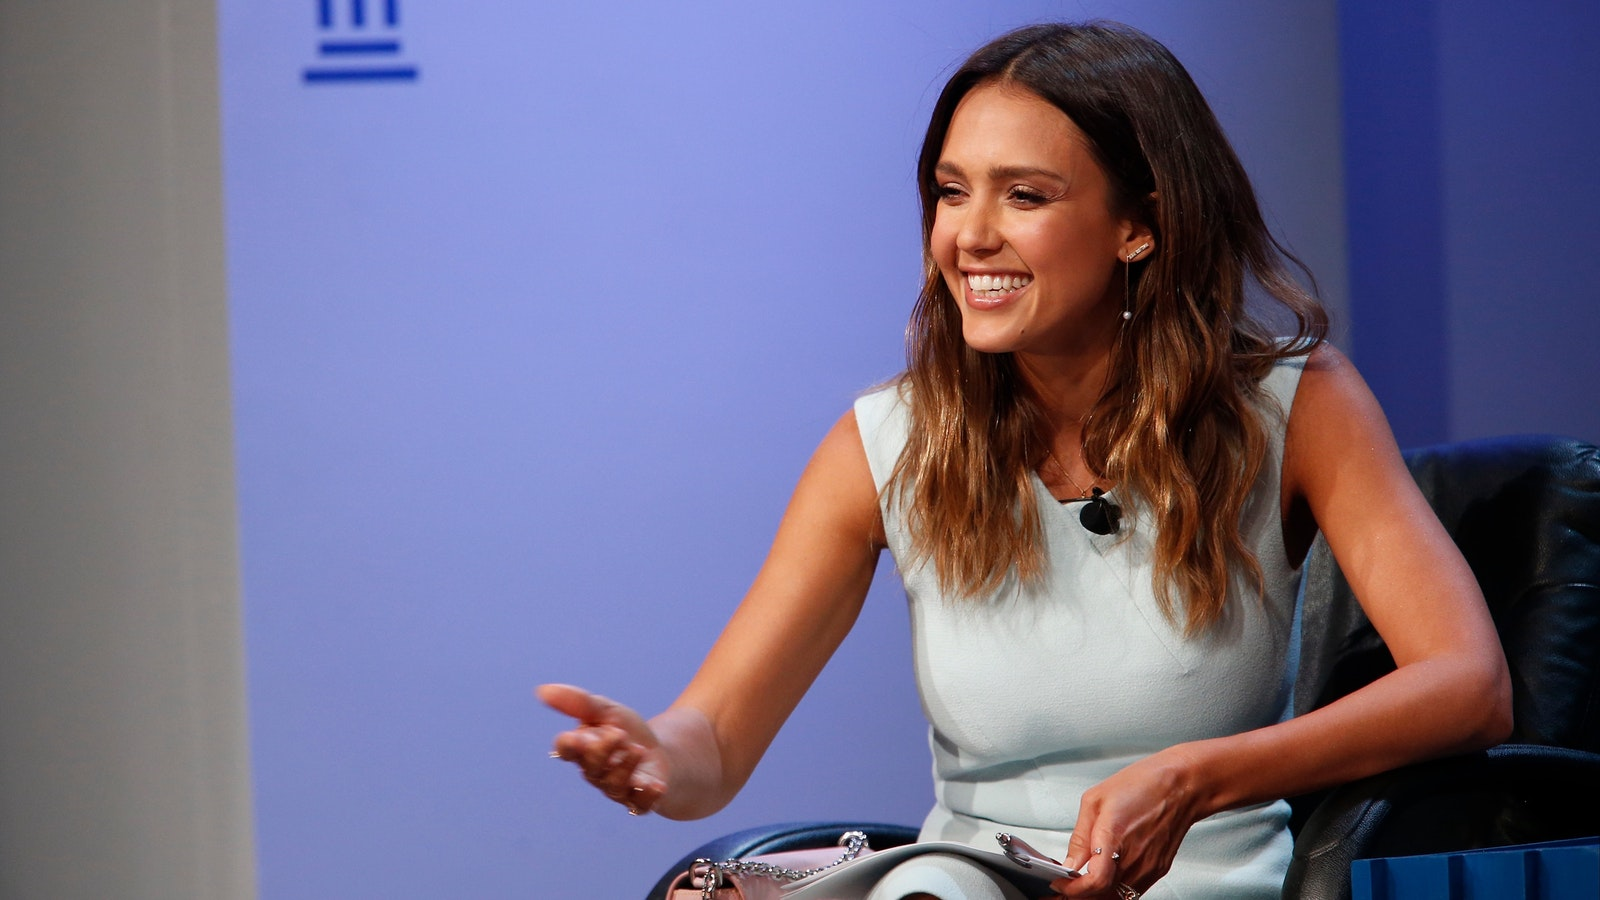 Honest Co. founder Jessica Alba. Photo by Bloomberg.